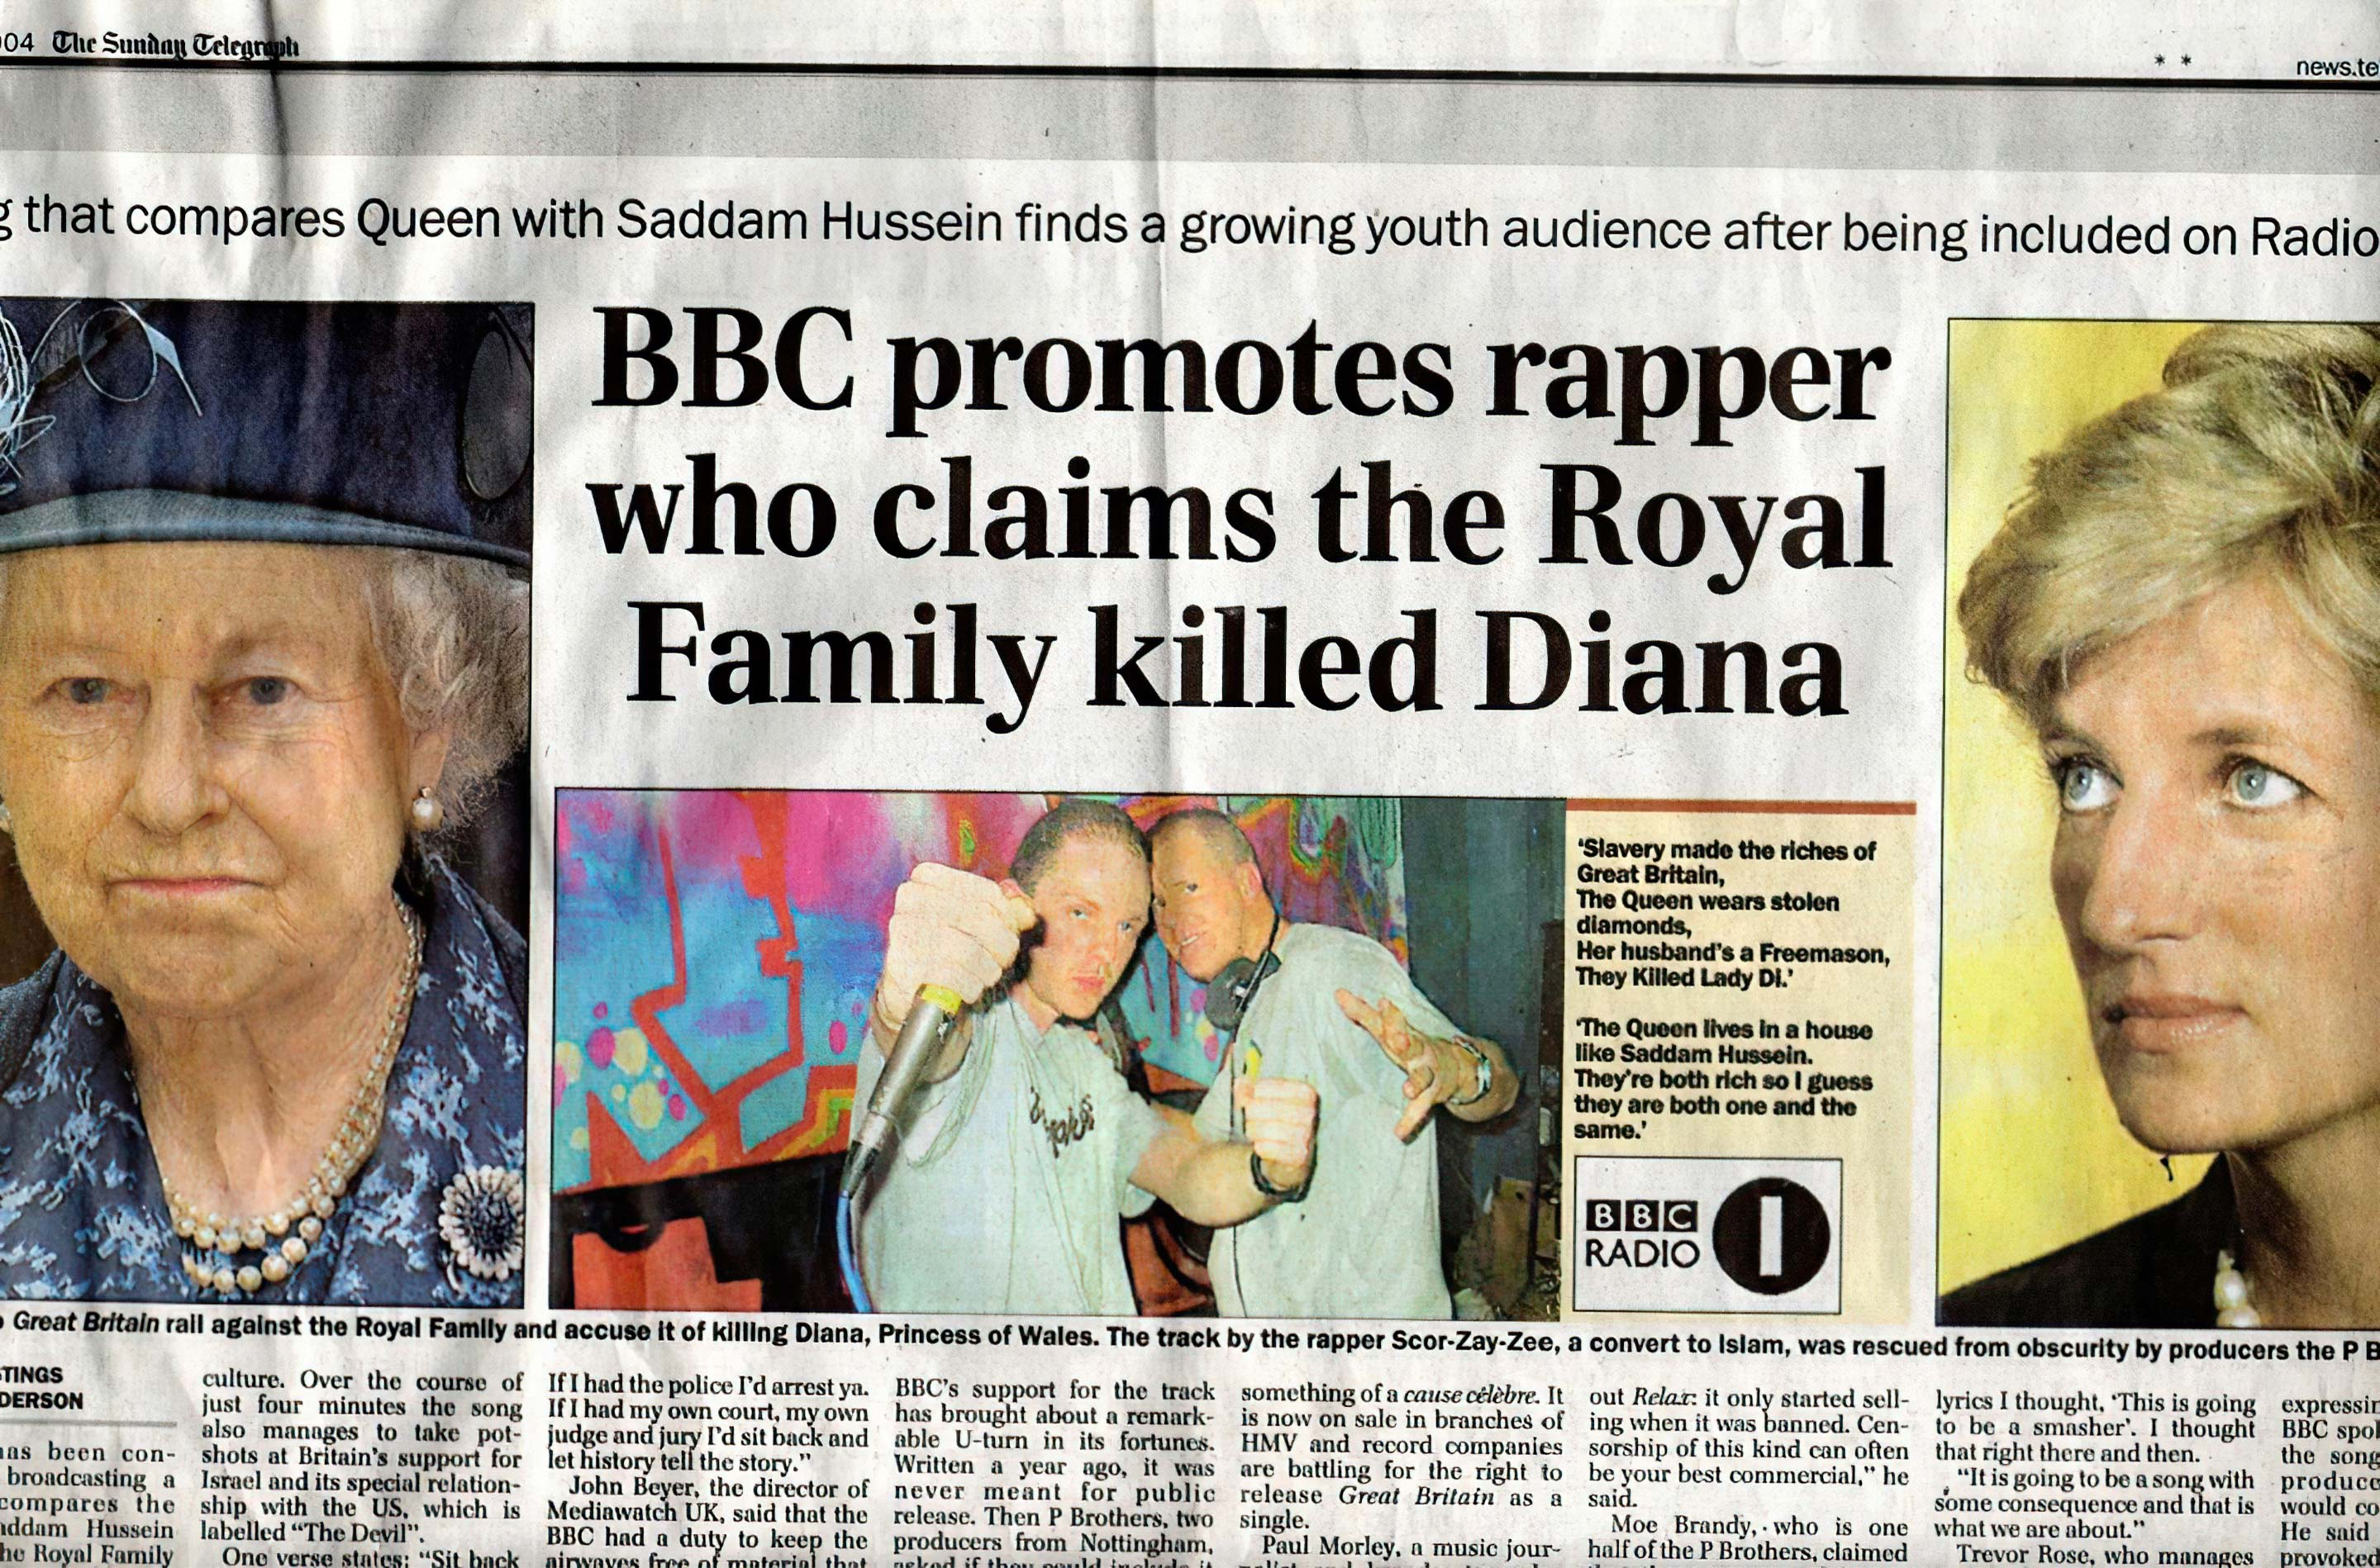 BBC promotes rapper who claims the Royal Family killed Diana